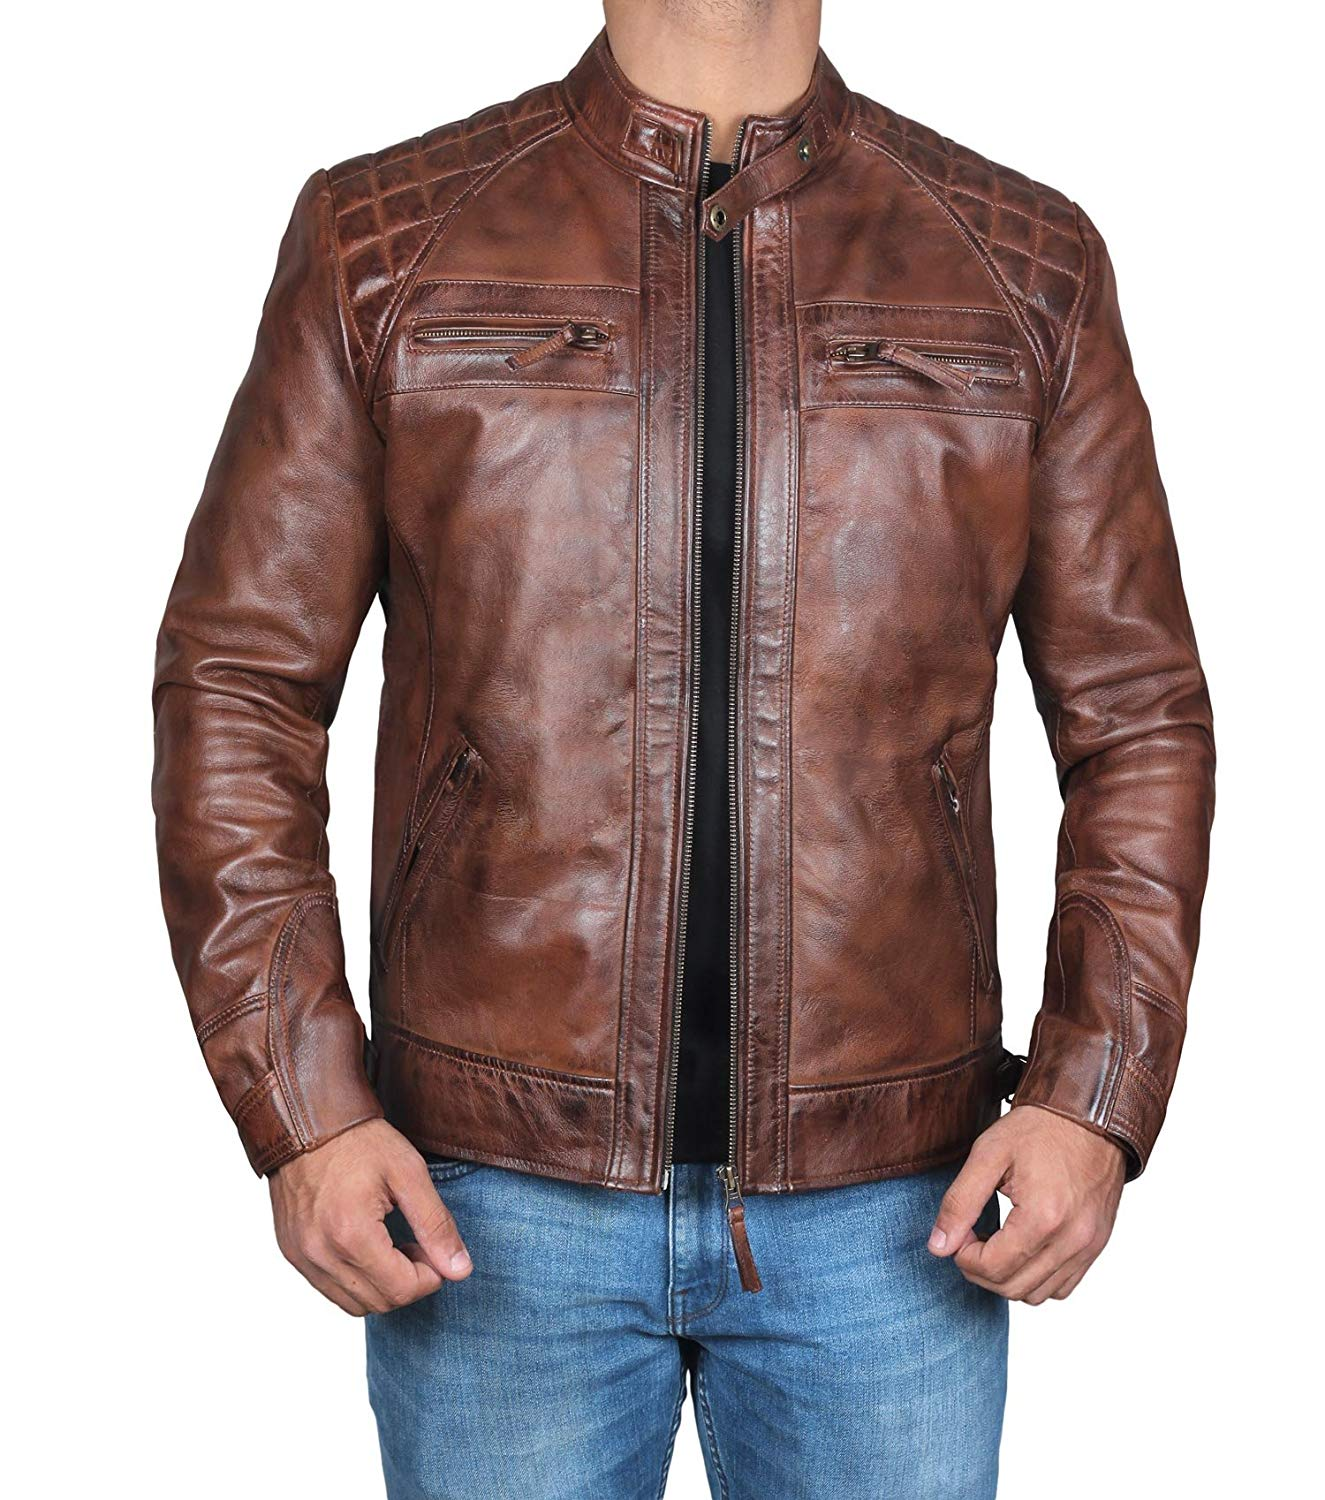 b0aa493cbea Get Quotations · Mens Classic Vintage Distressed Dark Brown Leather Jacket  - Motorcycle Leather Jacket